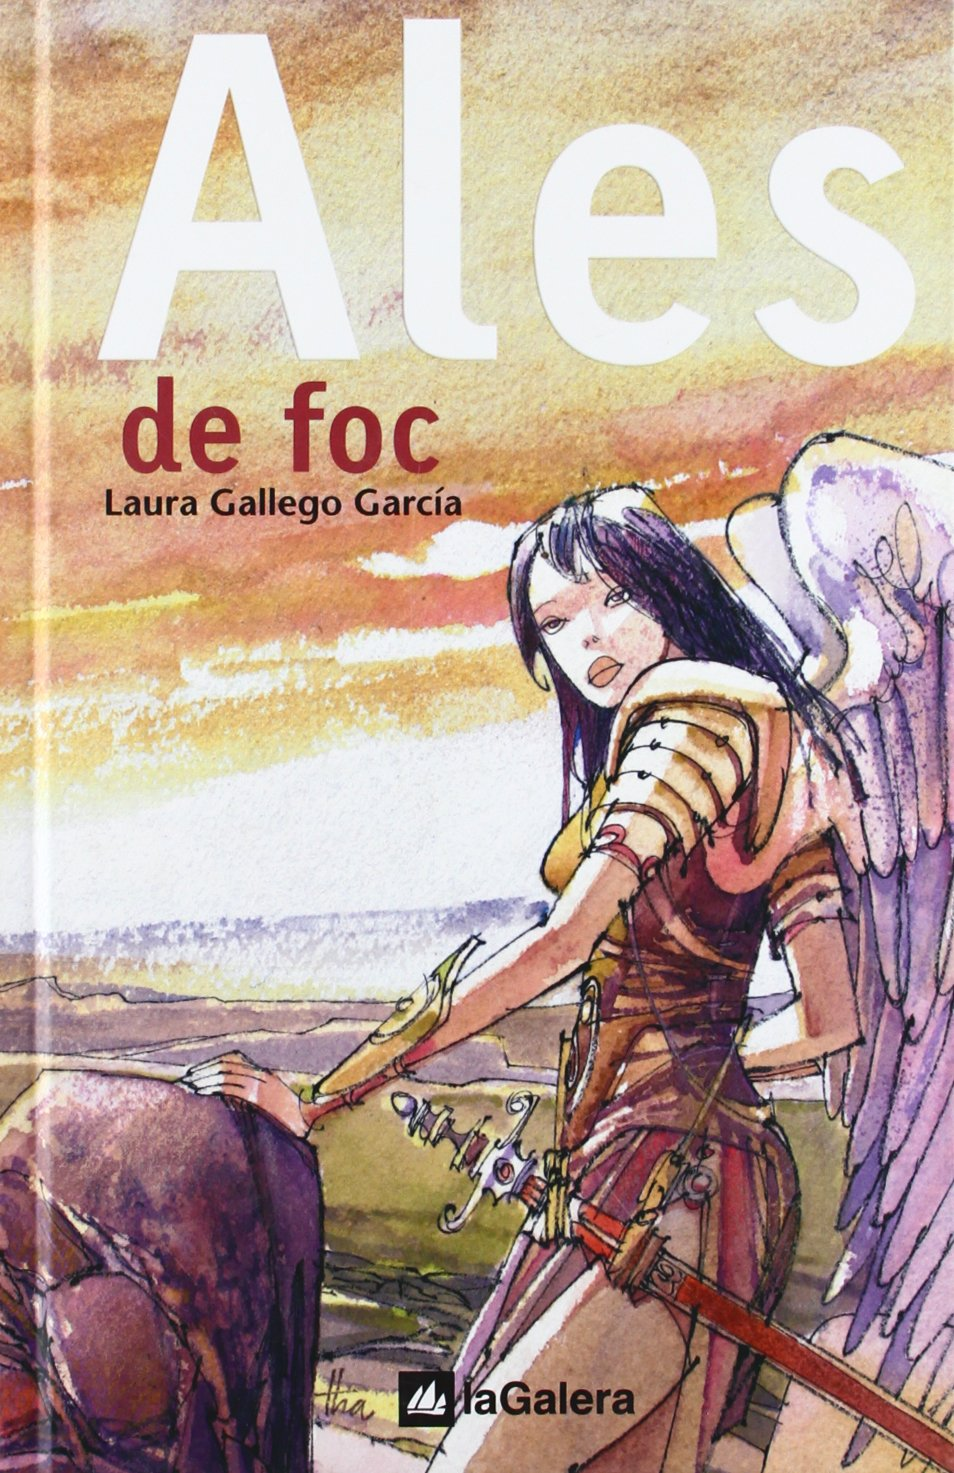 Ales de foc (Narrativa Singular): Amazon.es: Laura Gallego, Ferran Gibert: Libros